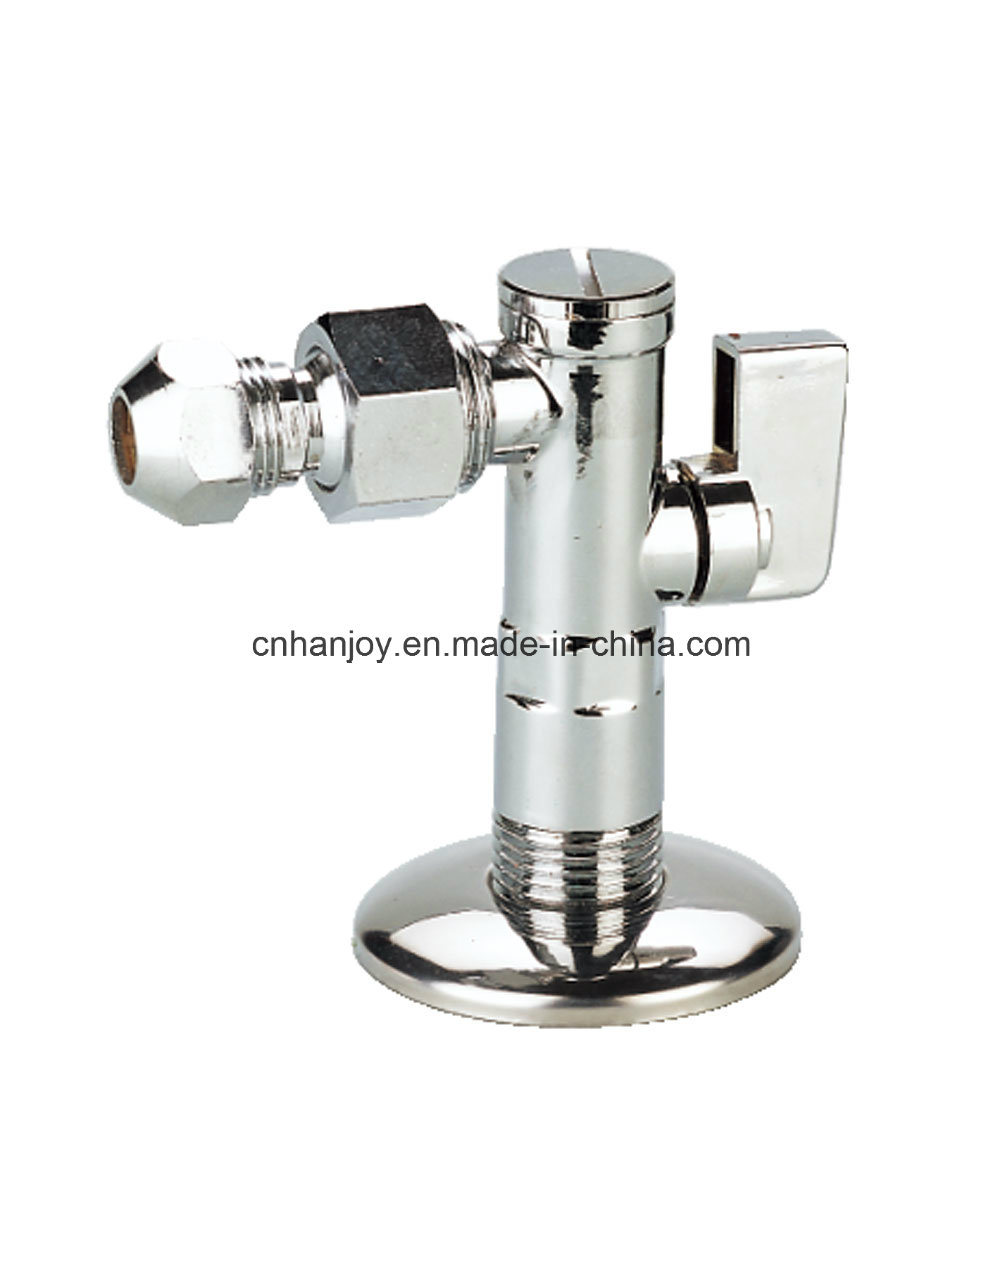 Brass Body Water Angle Valve with Filter(NV-3011)